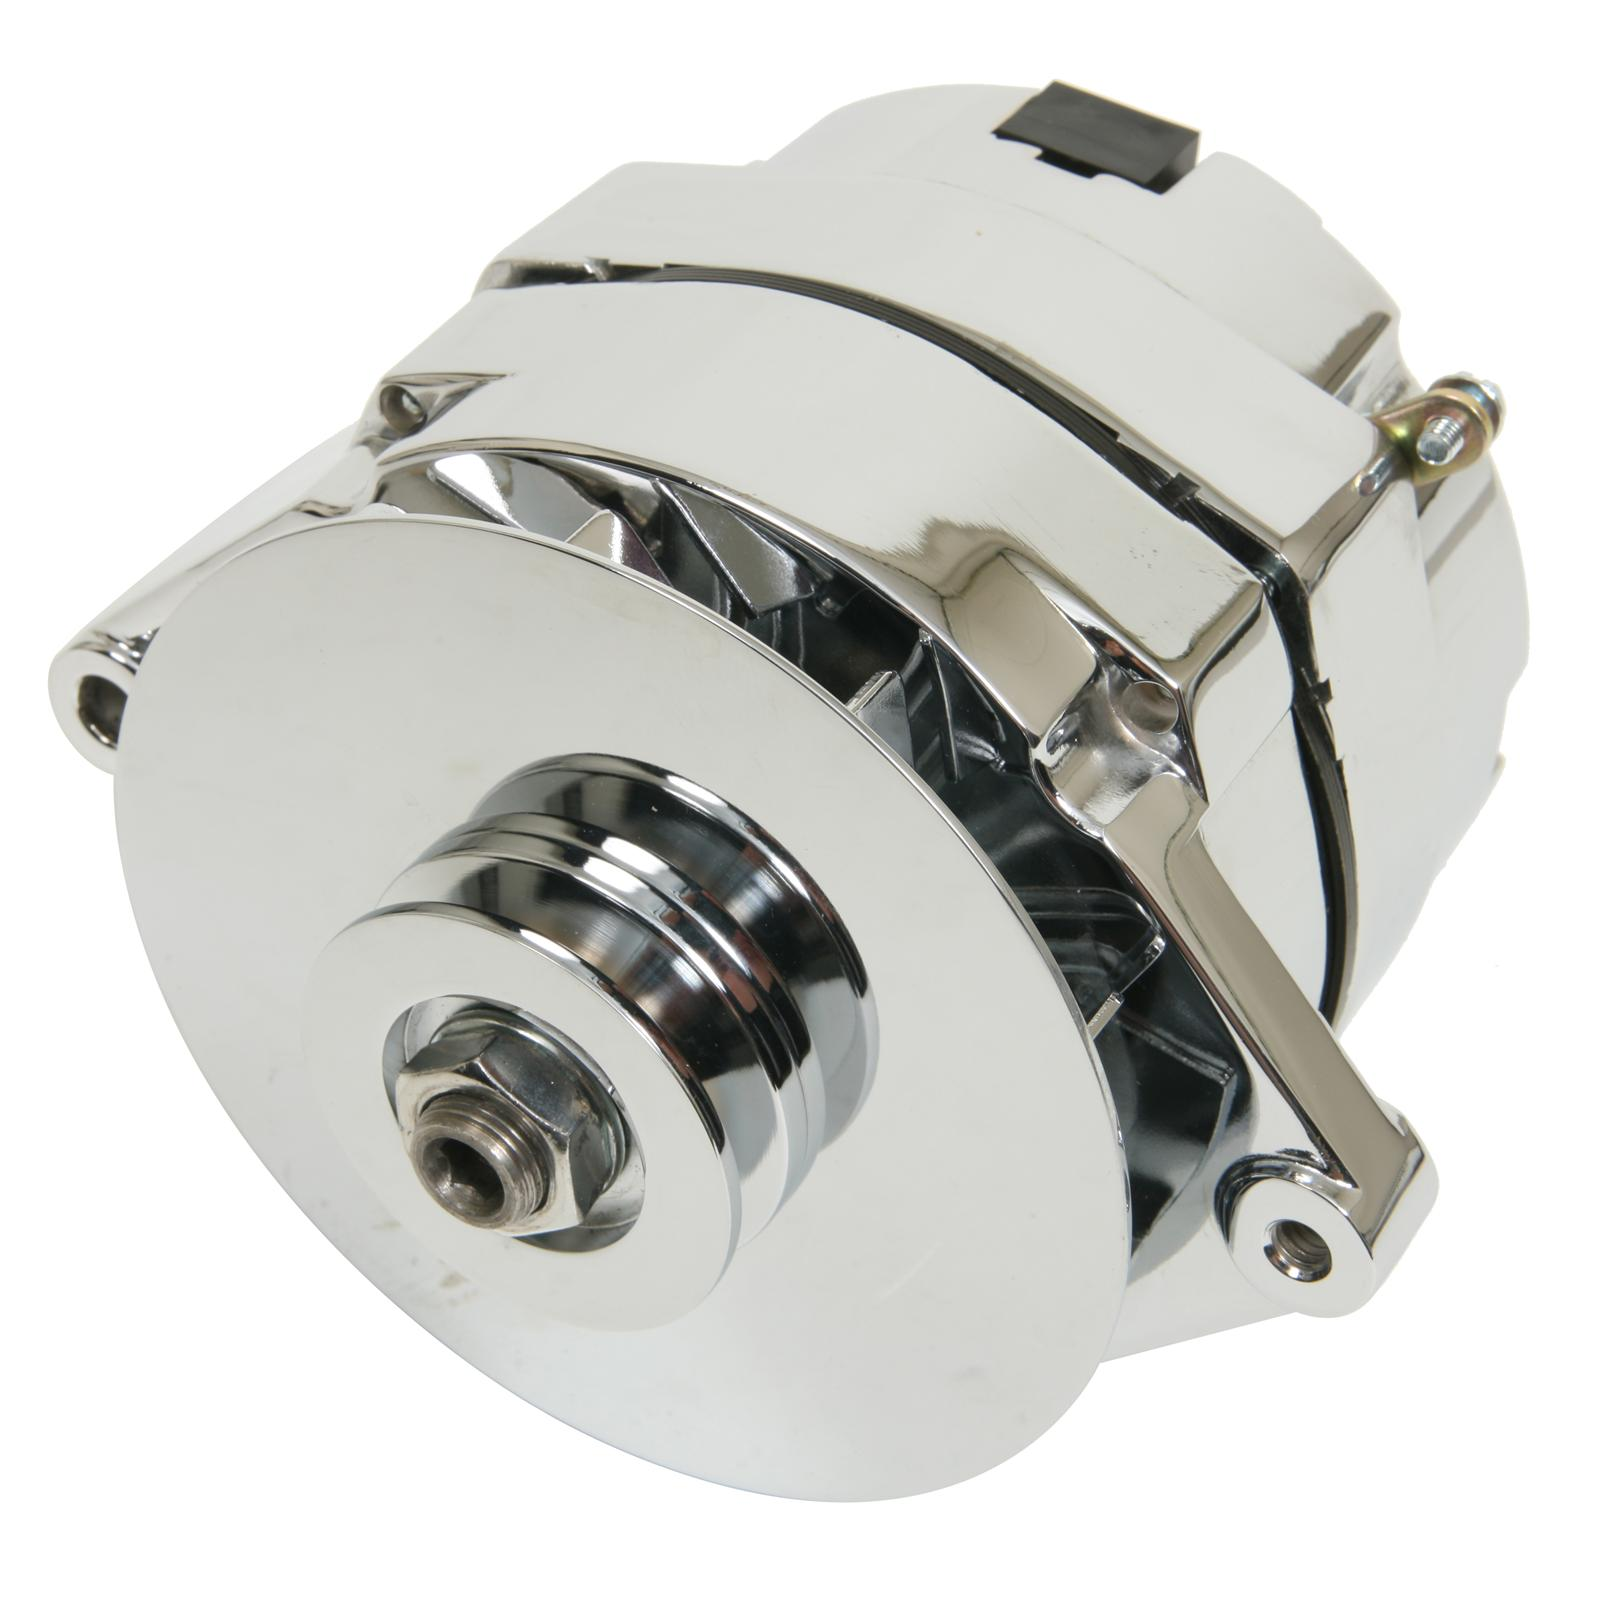 Summit Racing Chrome Alternators Sum G1667a Free Shipping On Toyota Onewire Alternator Upgrade For Simple Wiring Page 2 Orders Over 49 At